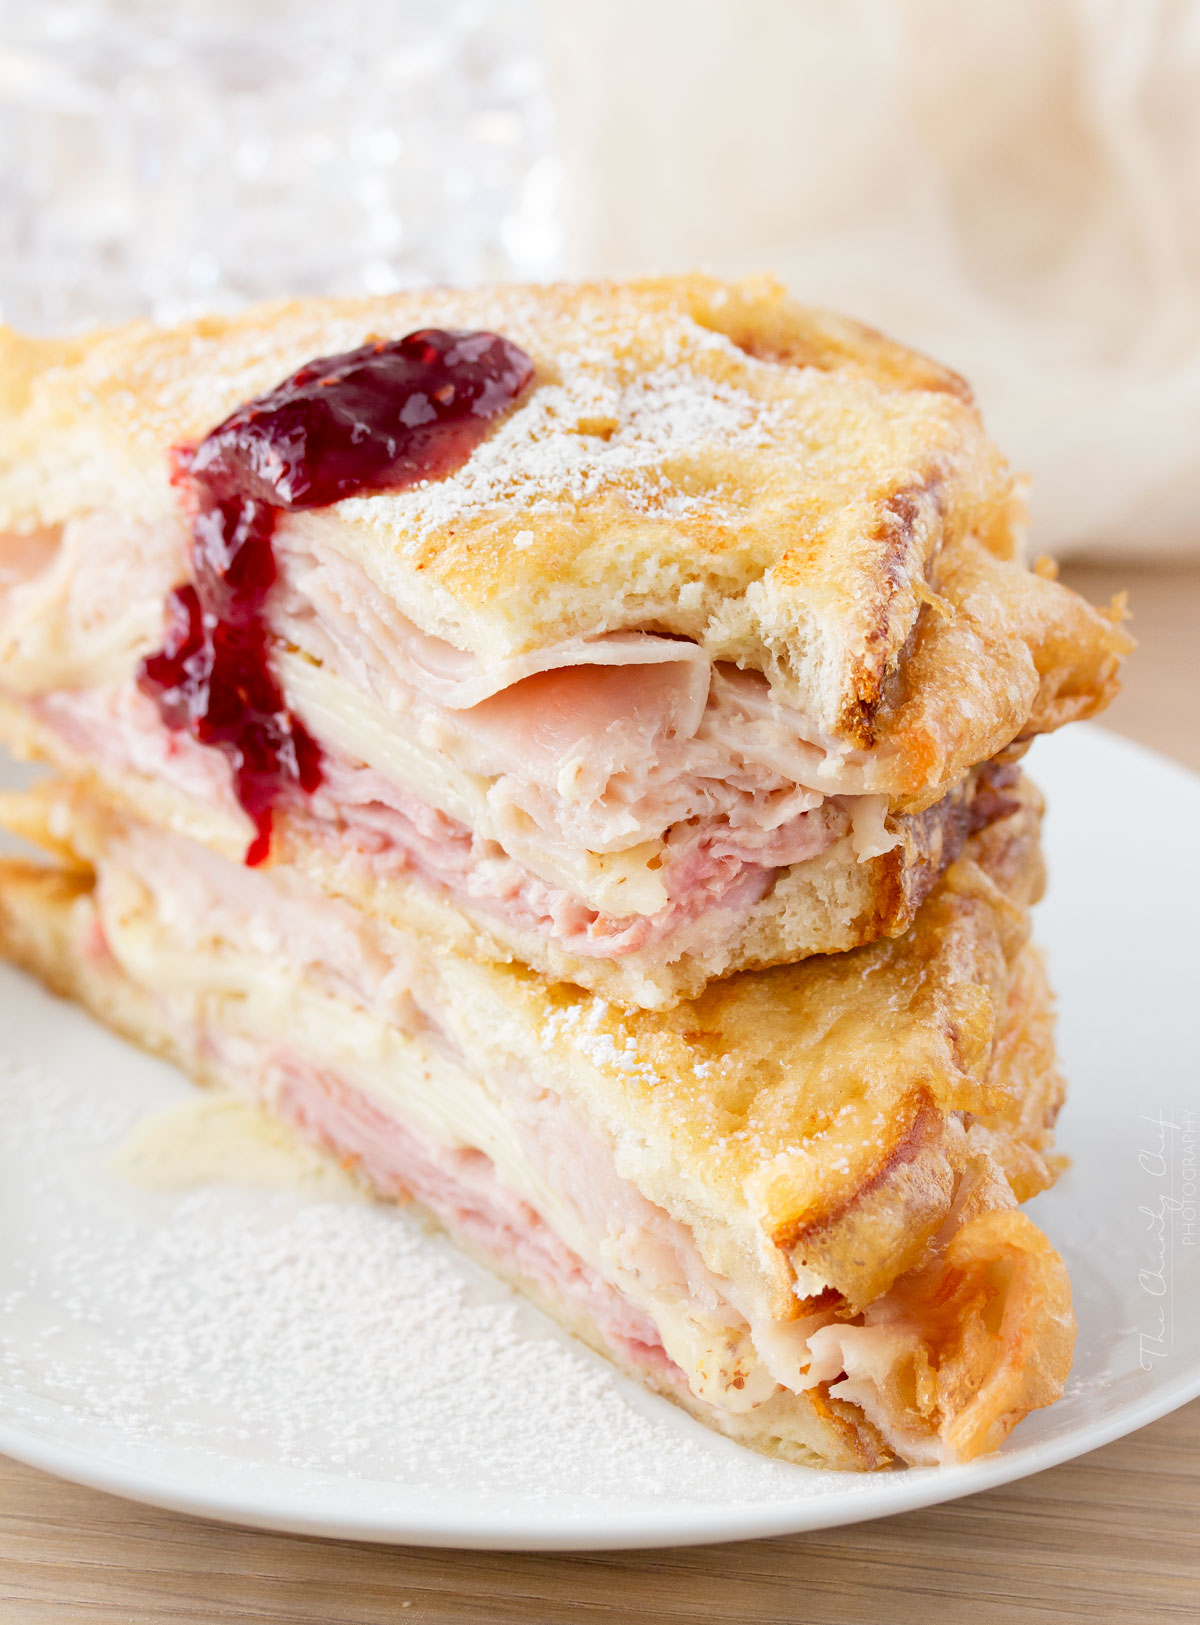 This monte cristo sandwich recipe is irresistible!